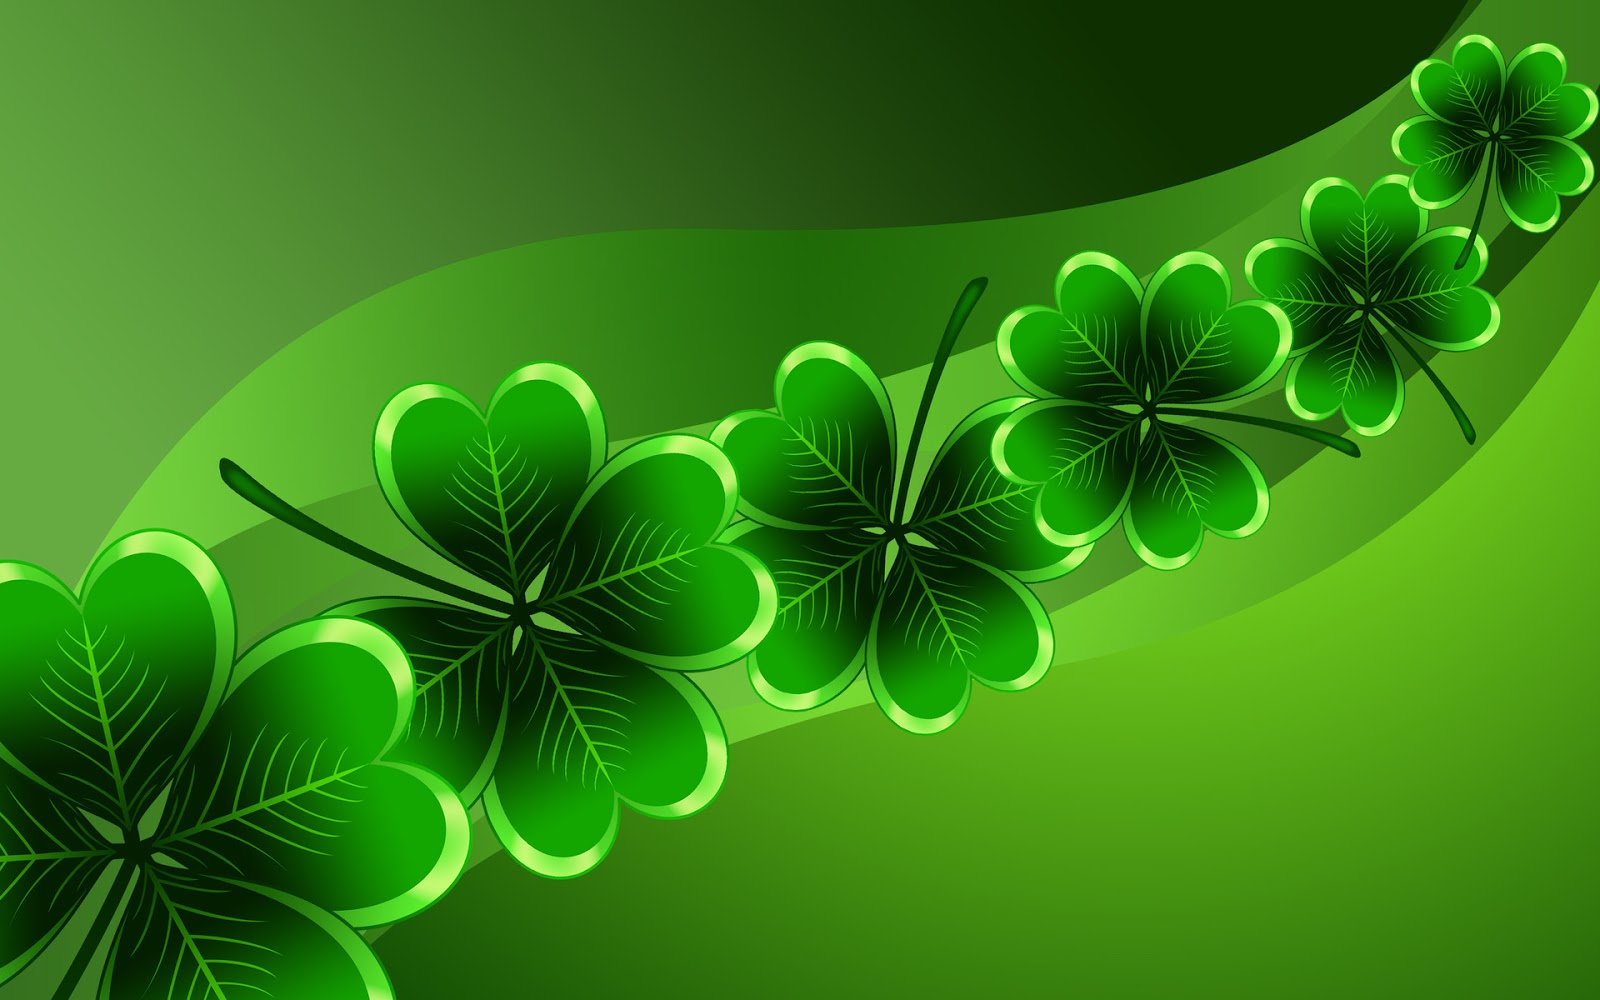 Happy st patricks day 2018 wallpapers free download st paddy day st patricks day 2018 wallpaper voltagebd Image collections